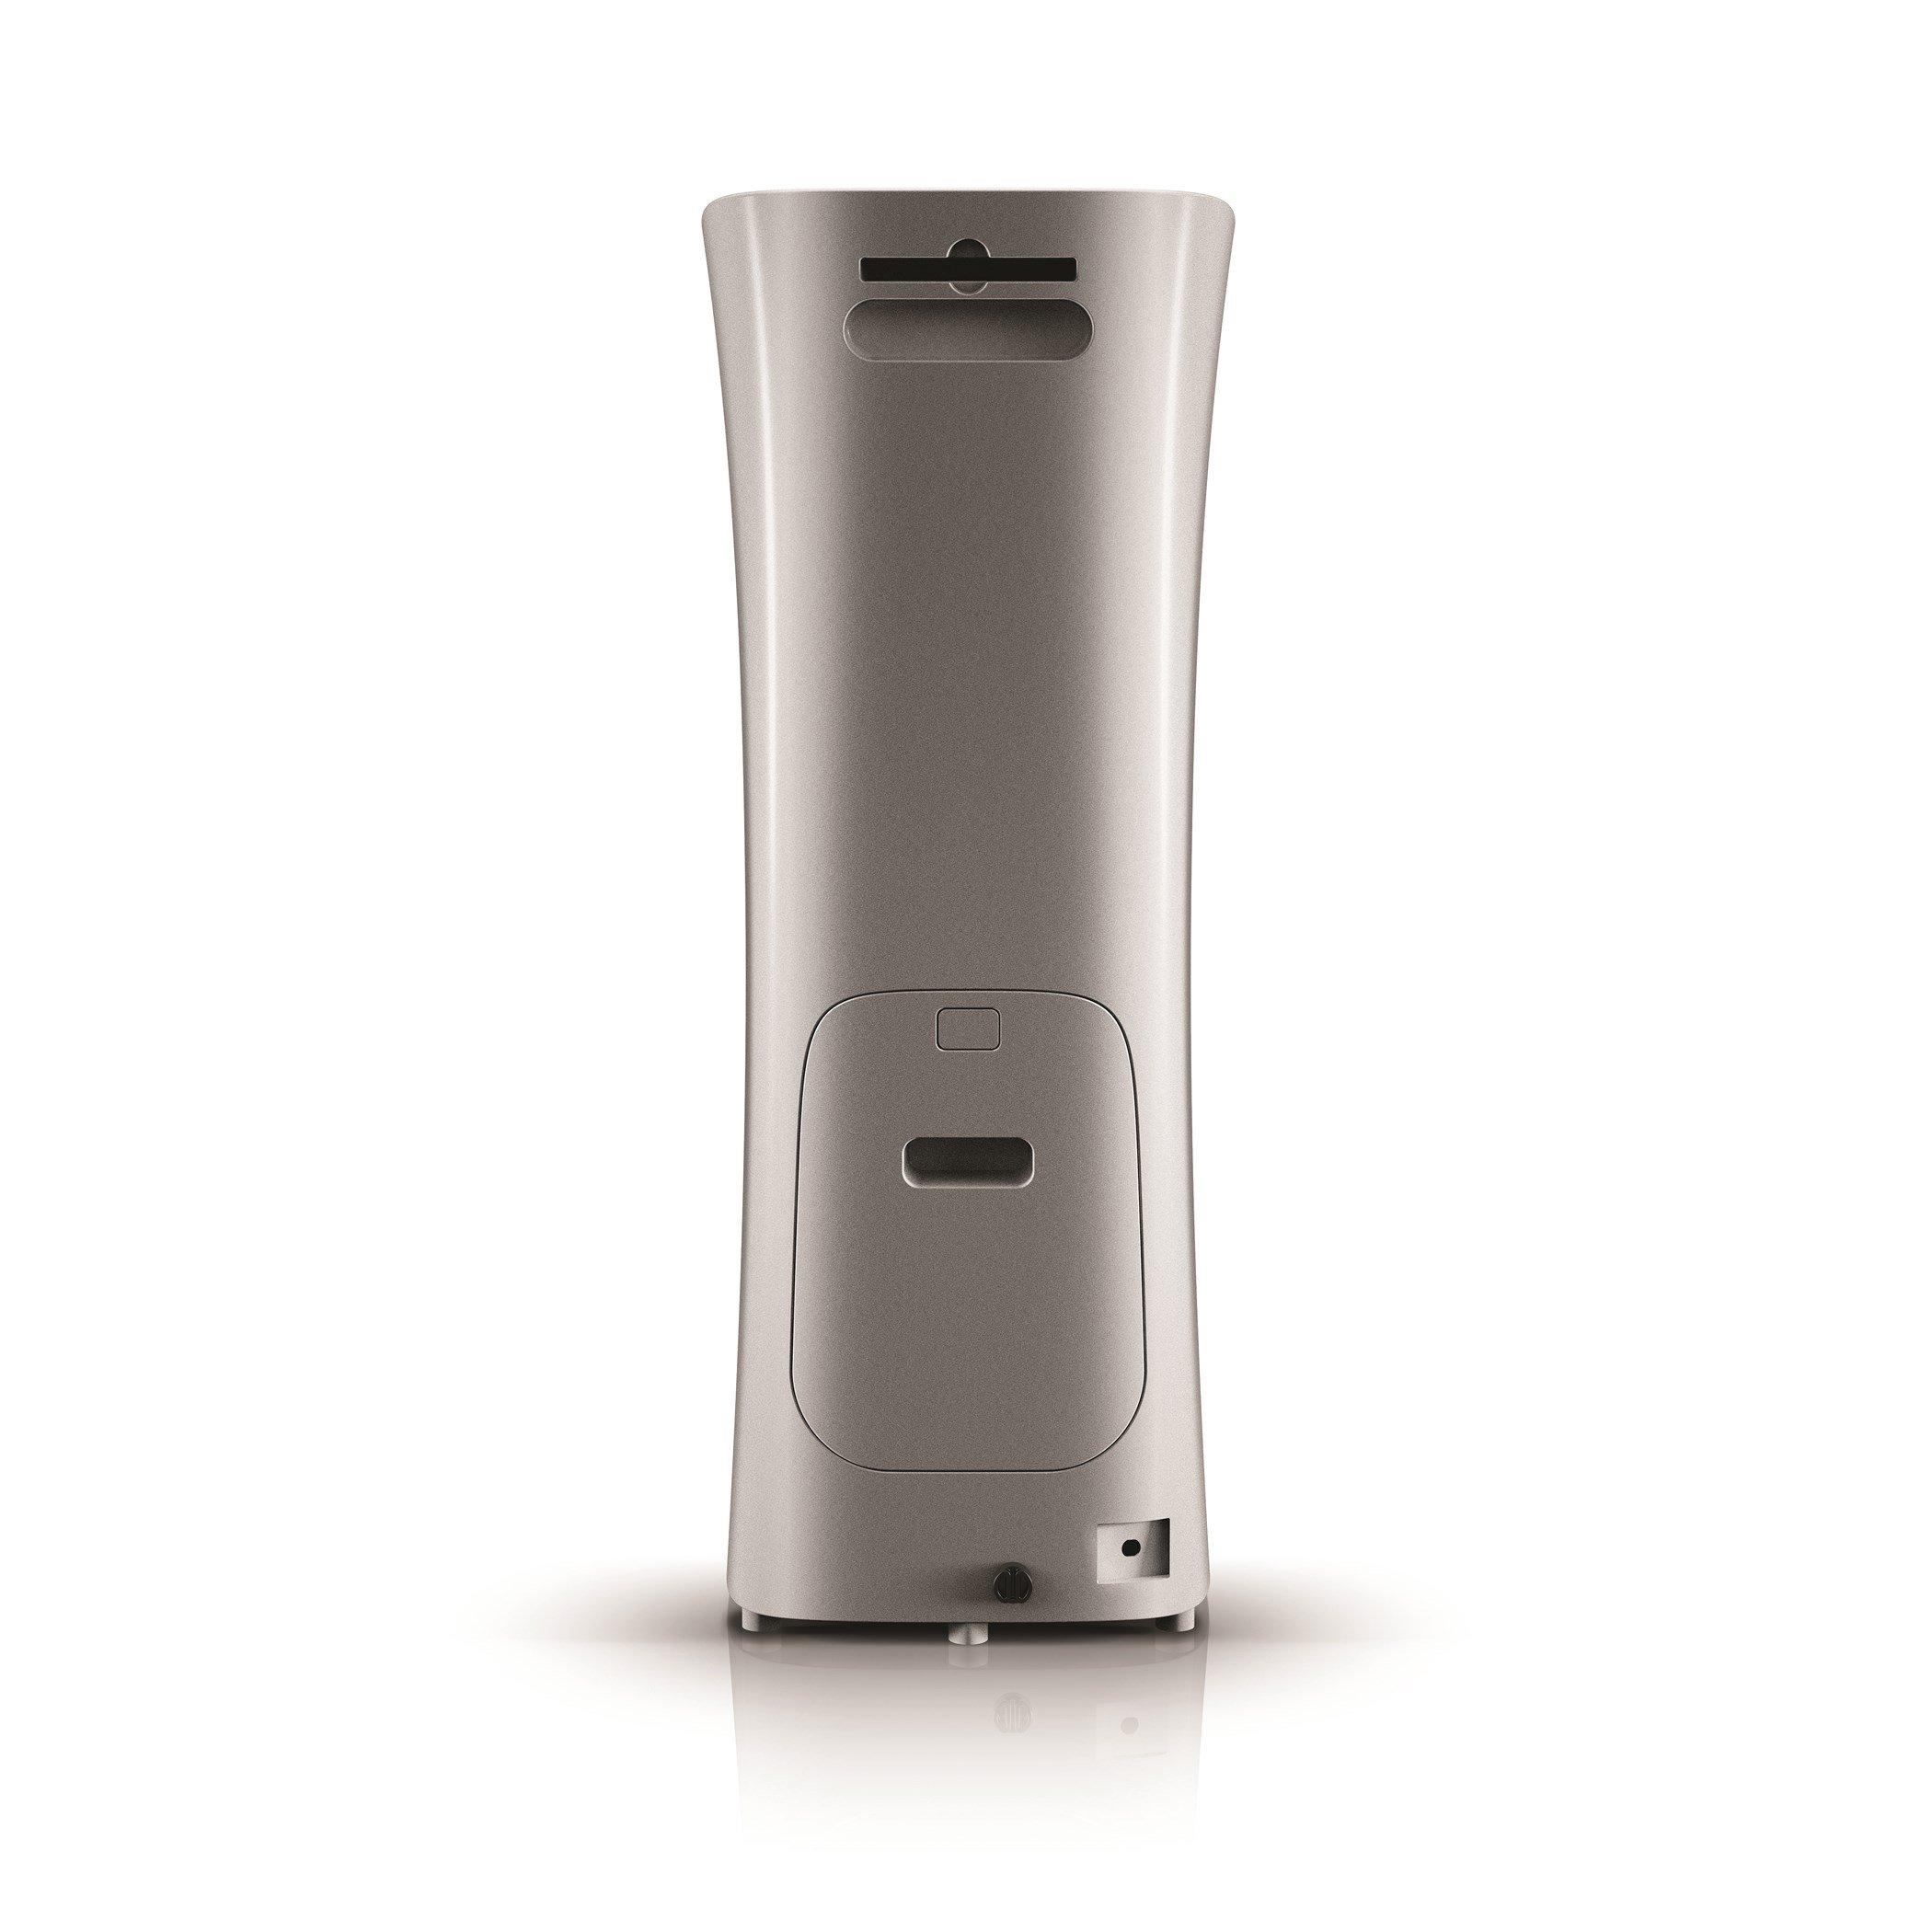 Best Air Purifier and Humidifier Combo - #4 Oreck WK15500B Air Refresh Humidifier and Air Purifier - Back View